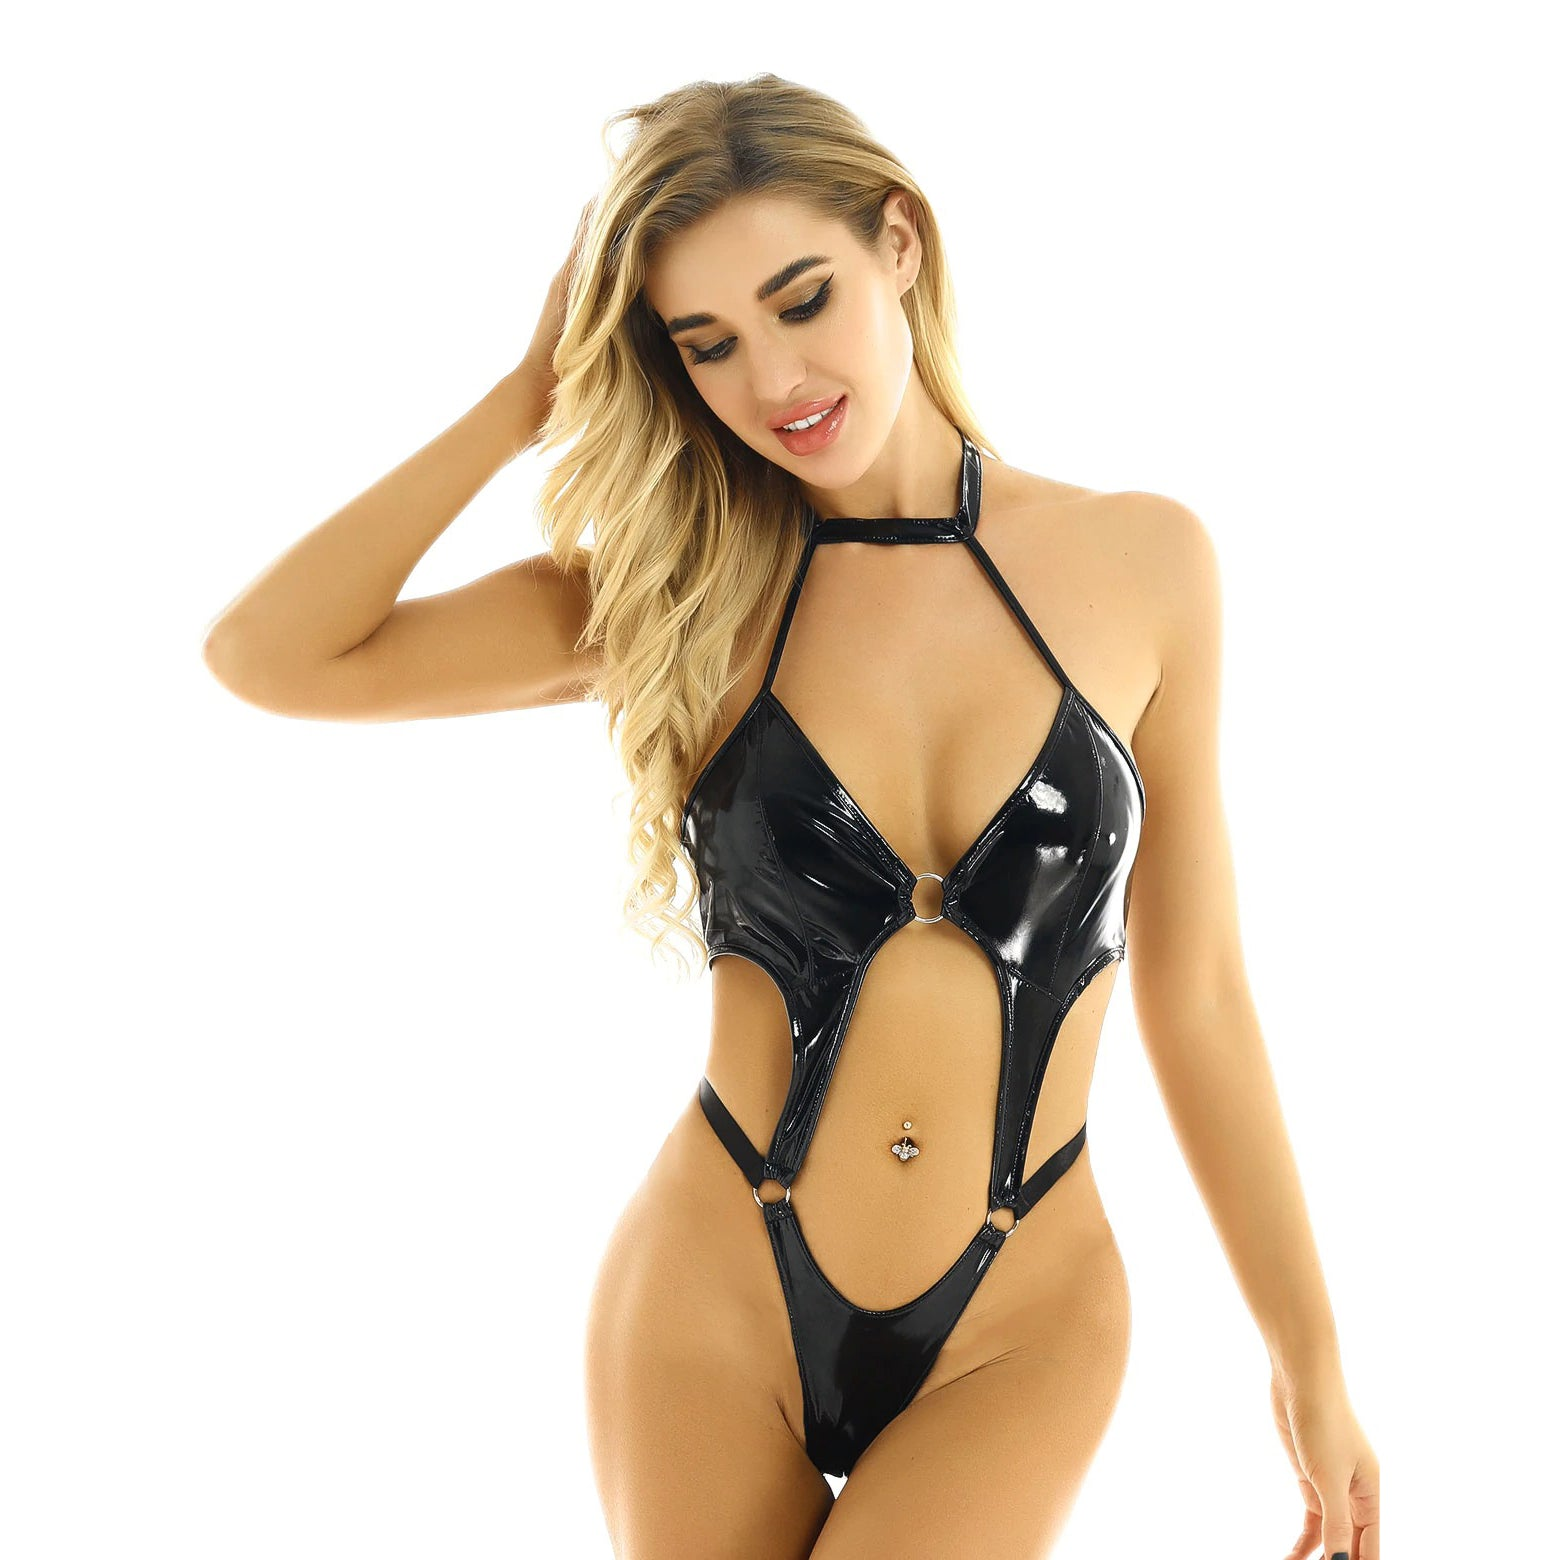 Women's Wetlook Leather Backless High Cut Bodysuit / Female Rave Outfits in Black - HARD'N'HEAVY